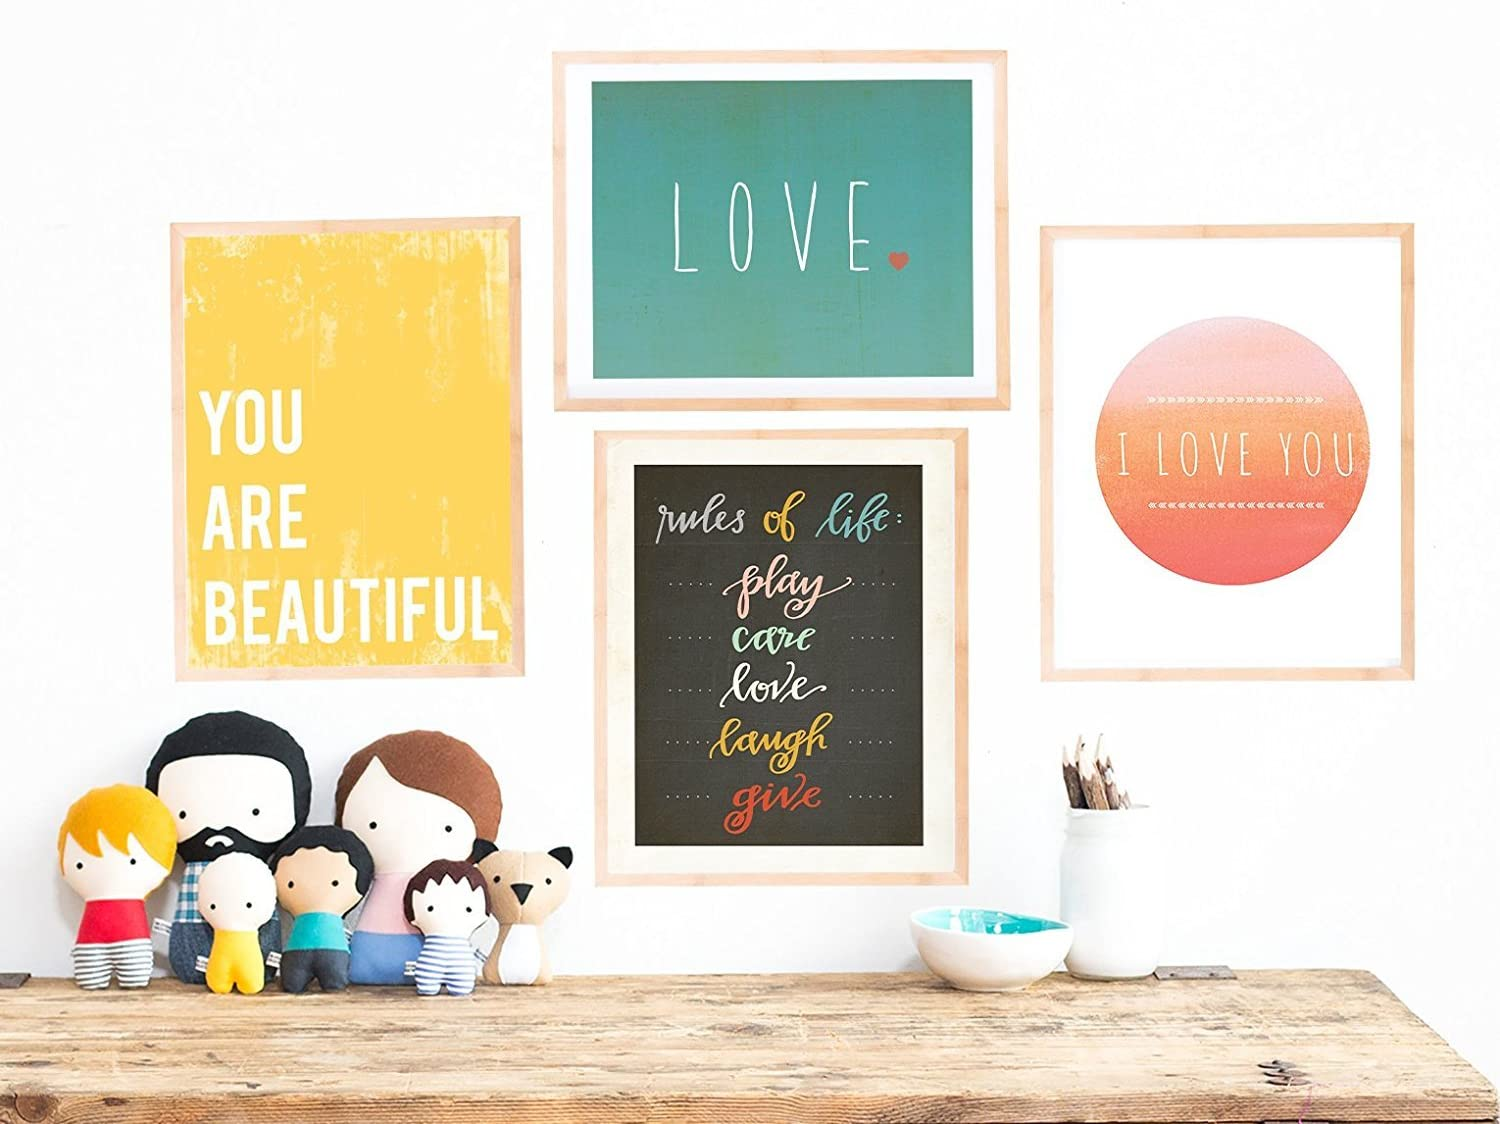 Rules of Life Collection, Set of Four 08x10 Inch Print Wall Art Prints, Nursery Decor, Kid's Room Decor, Gender Neutral Nursery Decor, Baby Room, Playroom Decor, Eco Friendly, Baby Shower